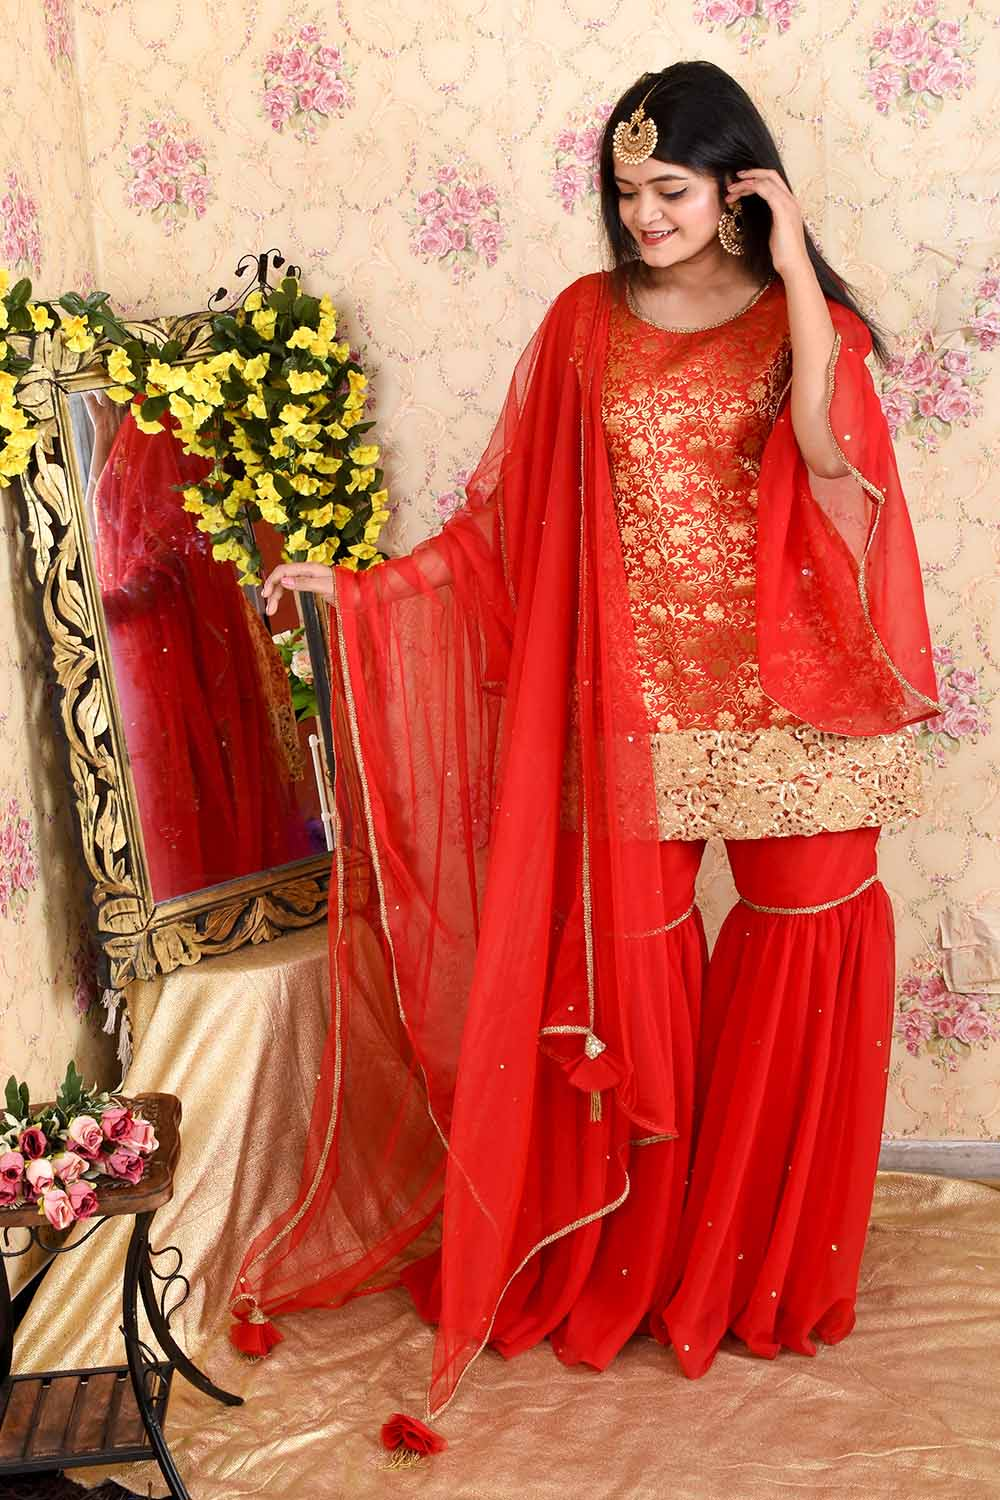 Red Brocade Sharara Suit with Dupatta